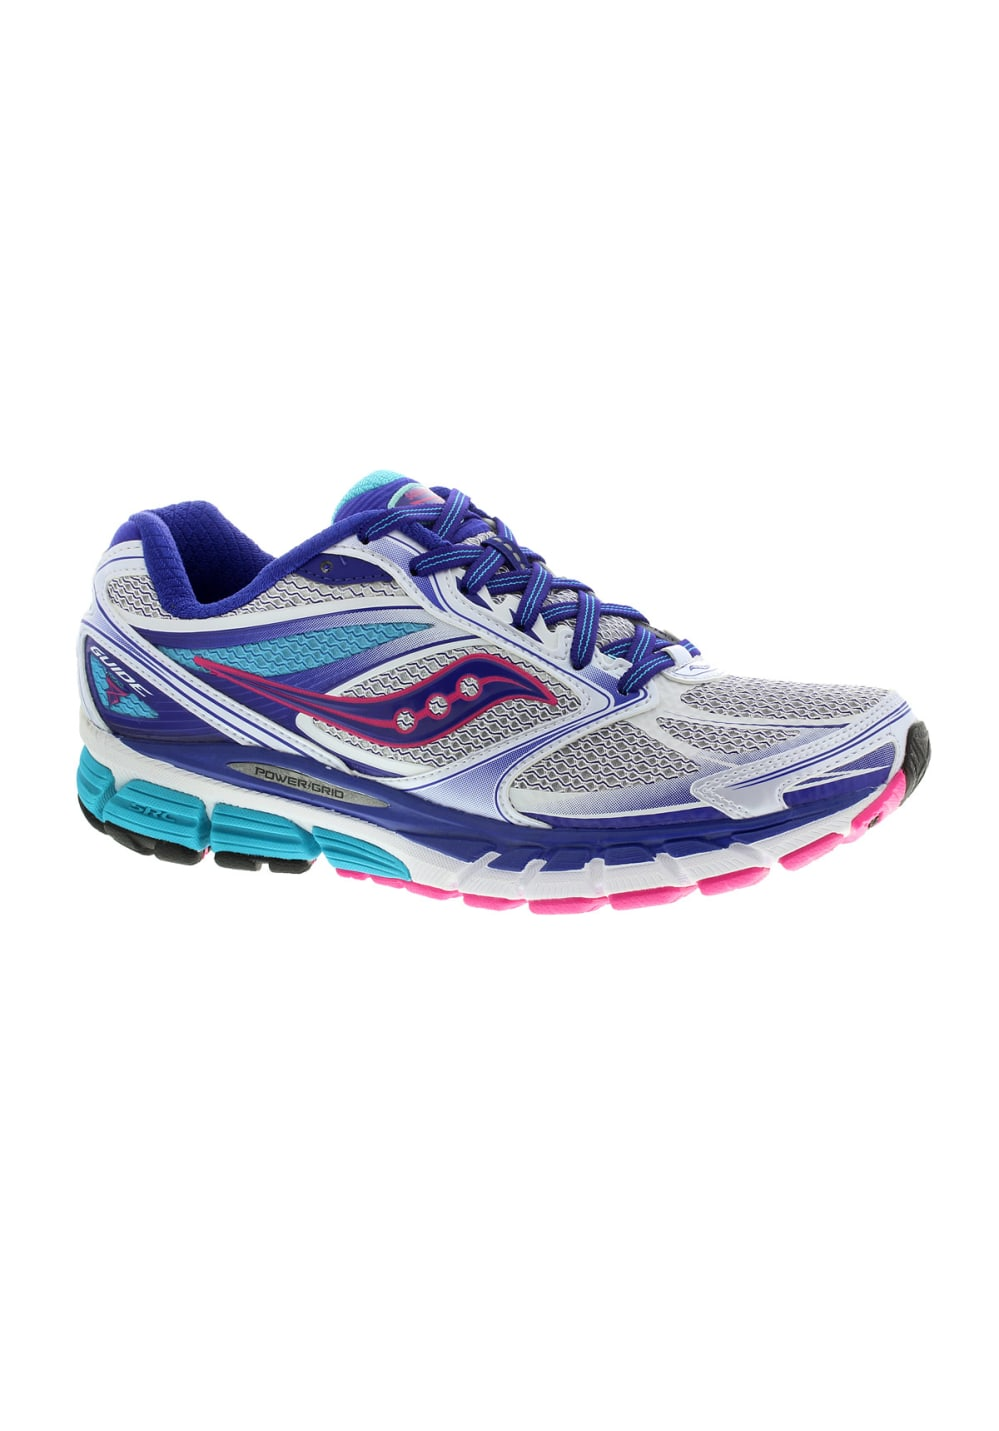 7a42c3f22f Saucony Guide 8 - Running shoes for Women - Grey